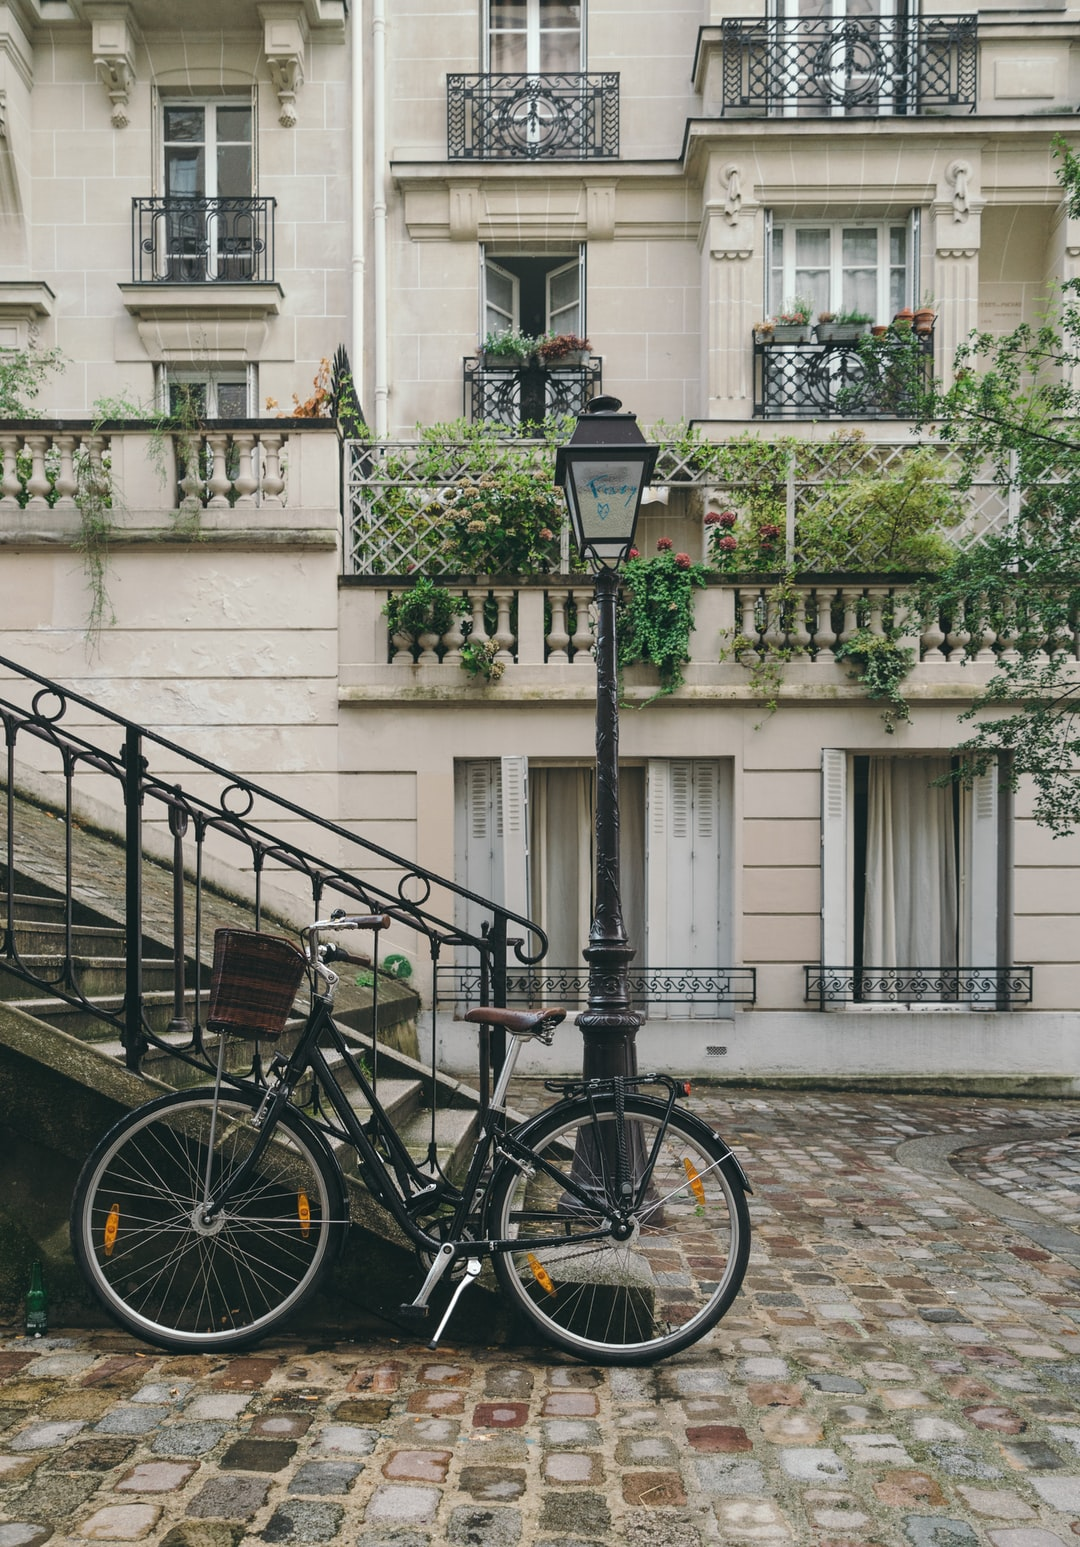 Bicycle with French buildings